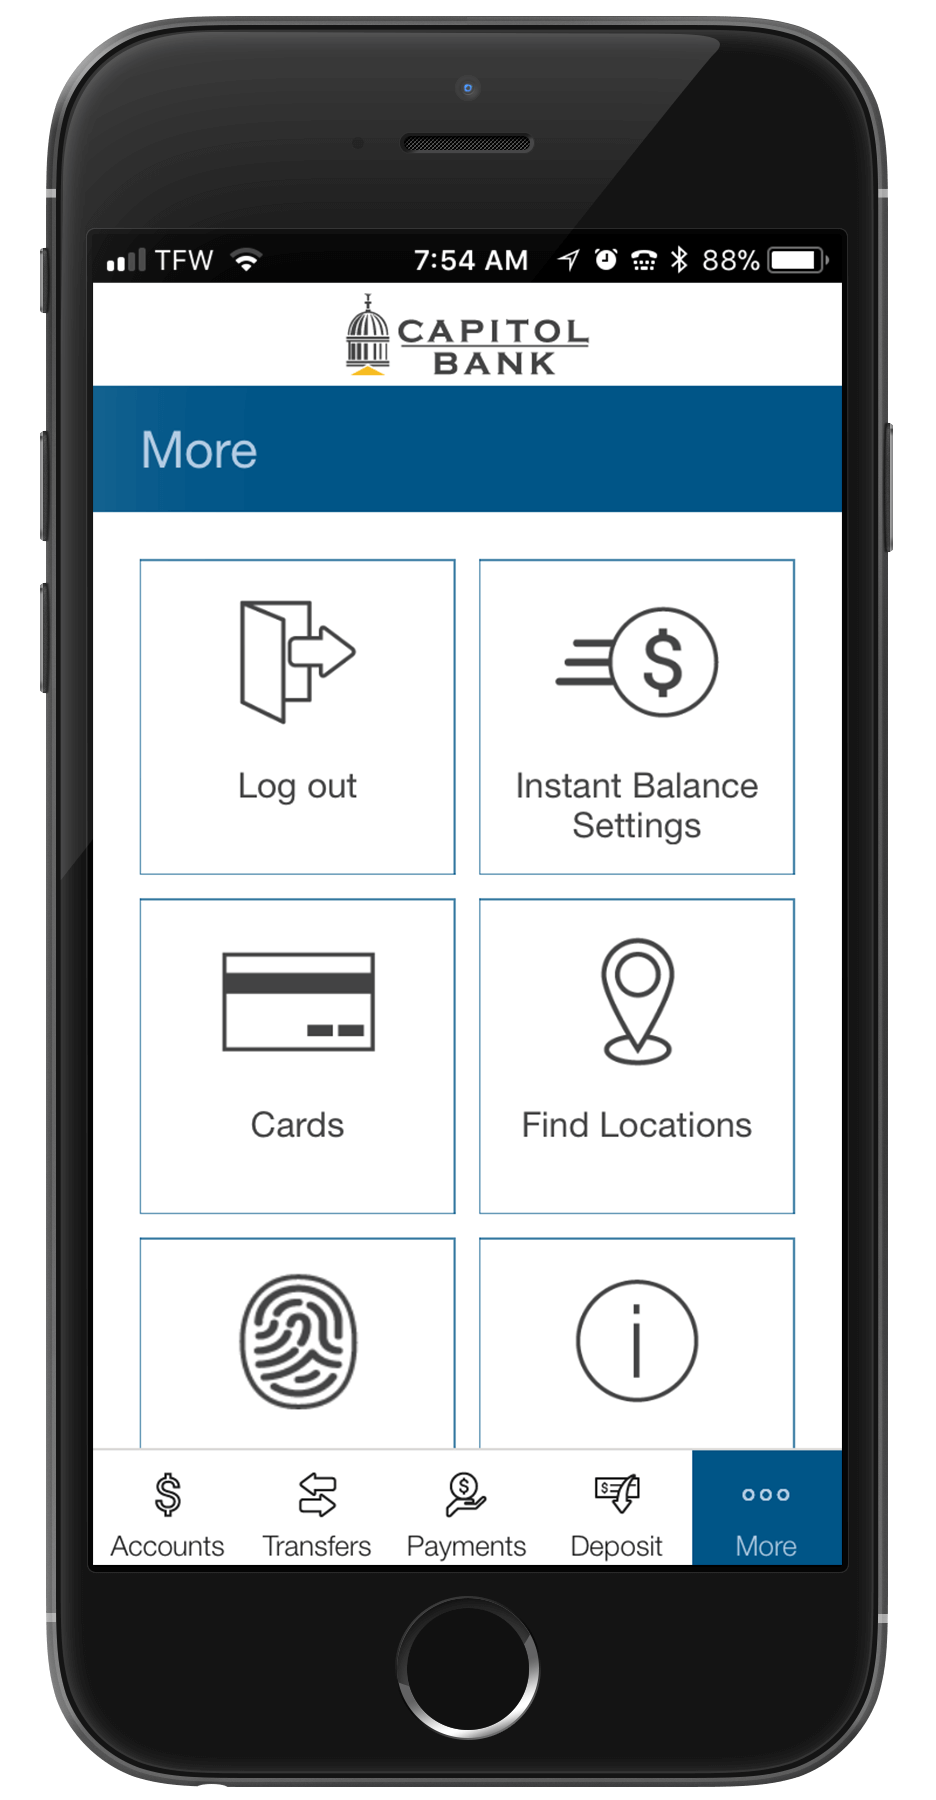 Access Card Manager from the More menu of mobile banking